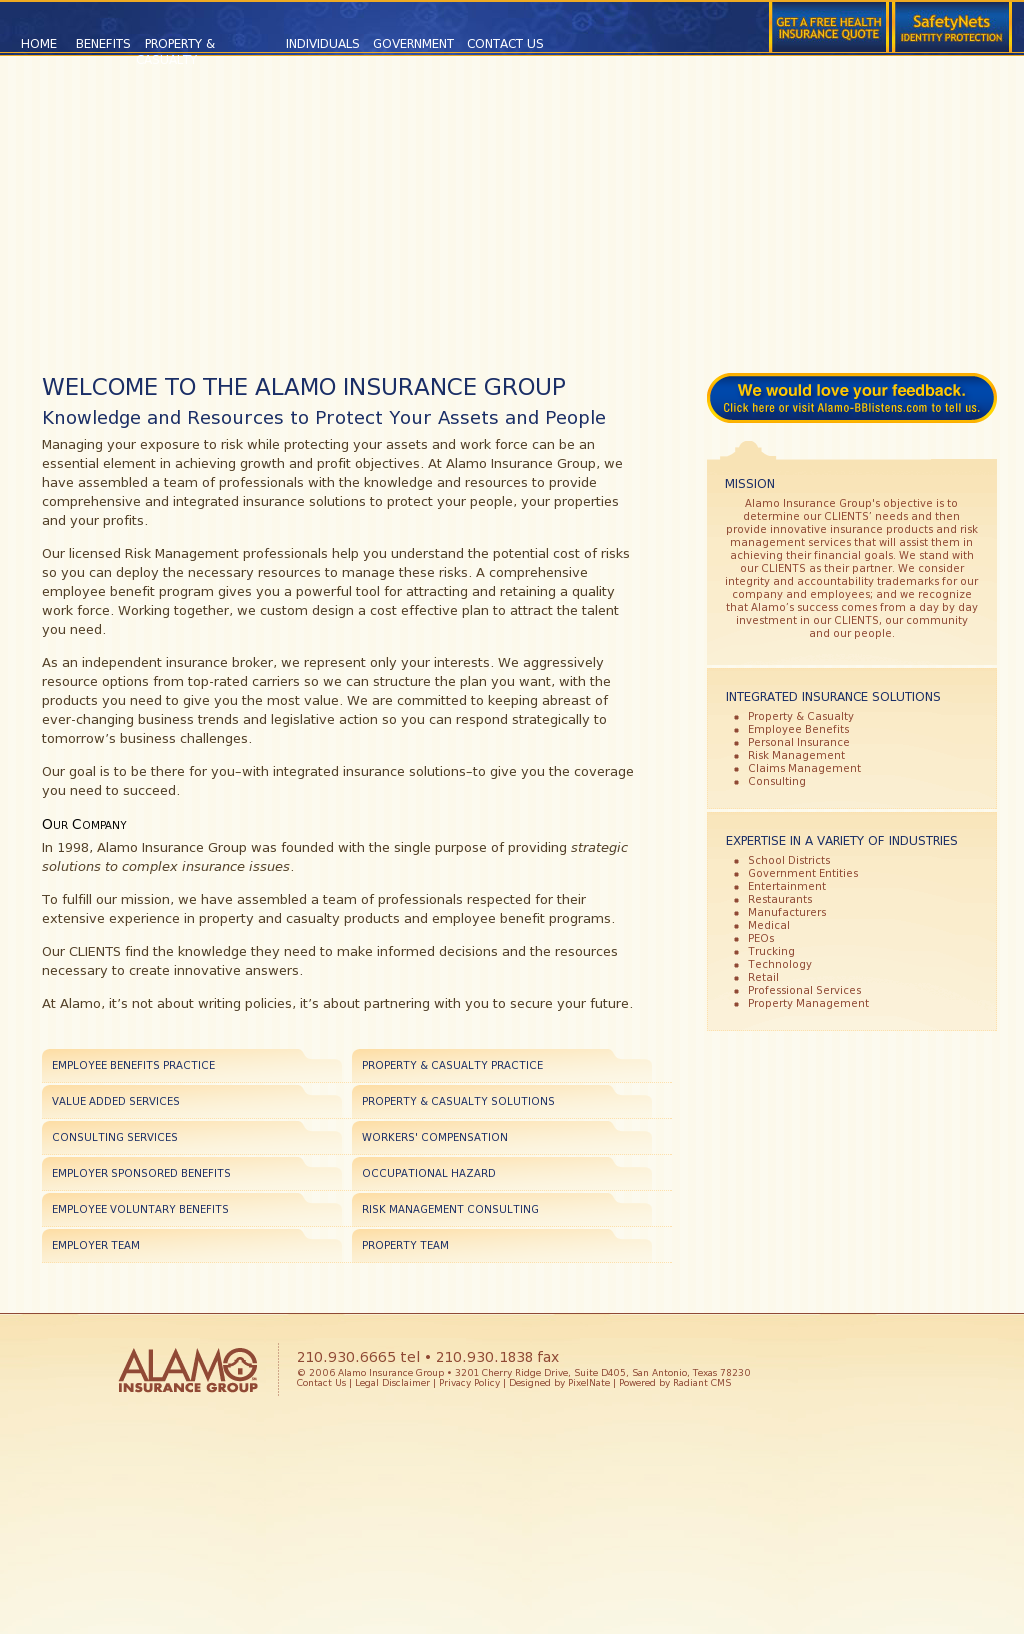 Alamo Insurance Group Competitors Revenue And Employees  Owler  Alamo Insurance Group Competitors Revenue And Employees  Owler Company  Profile